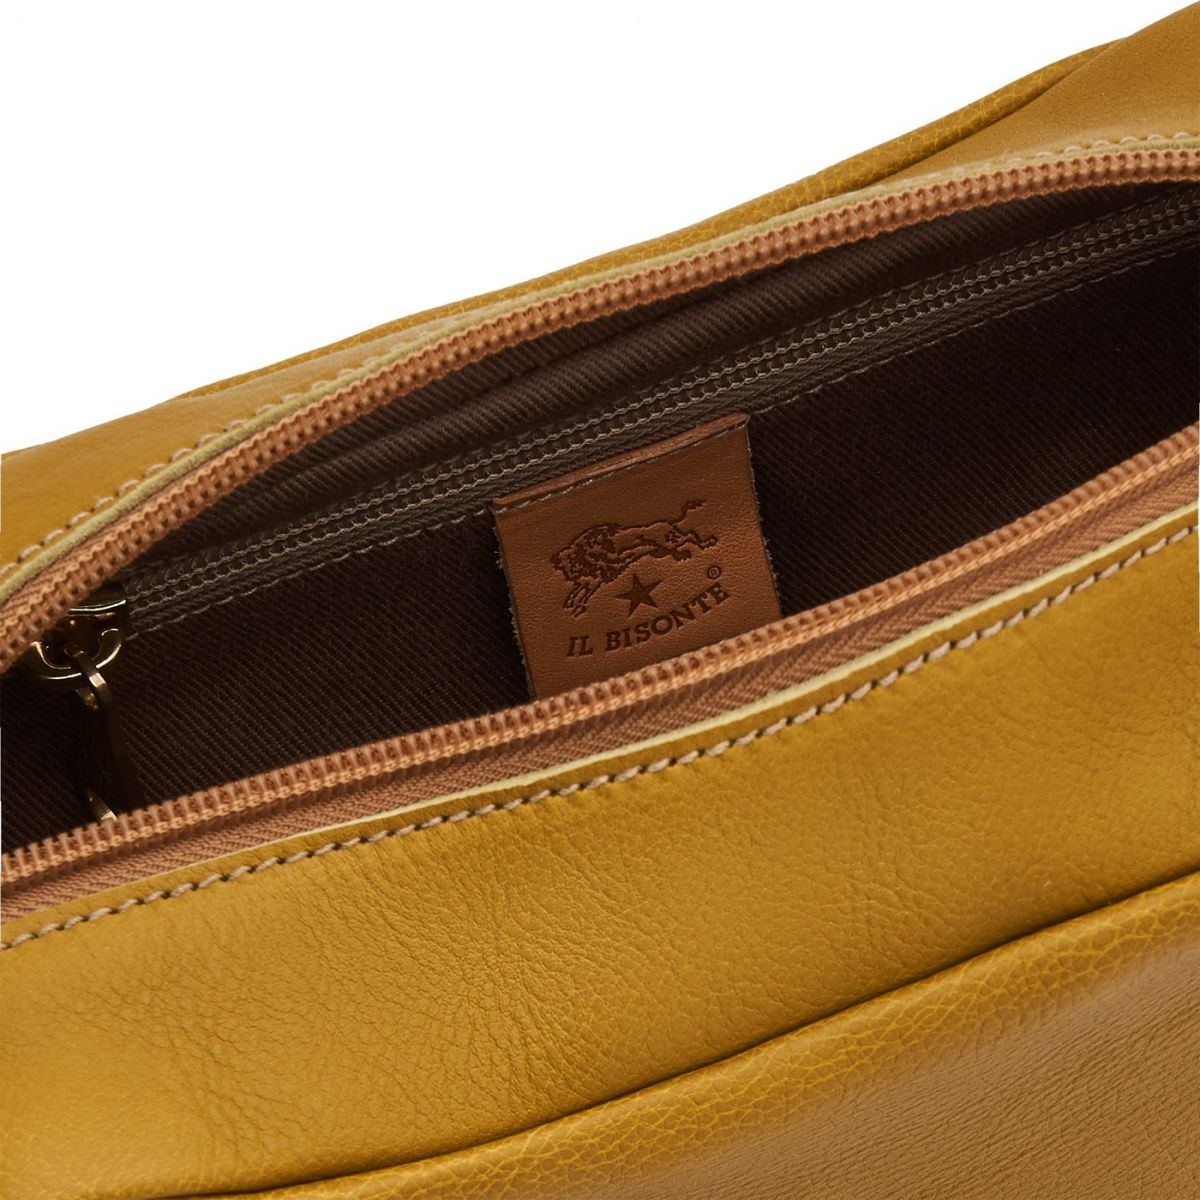 Matilde - Women's Crossbody Bag Salina in Cowhide Leather BCR199 color Curry   Details